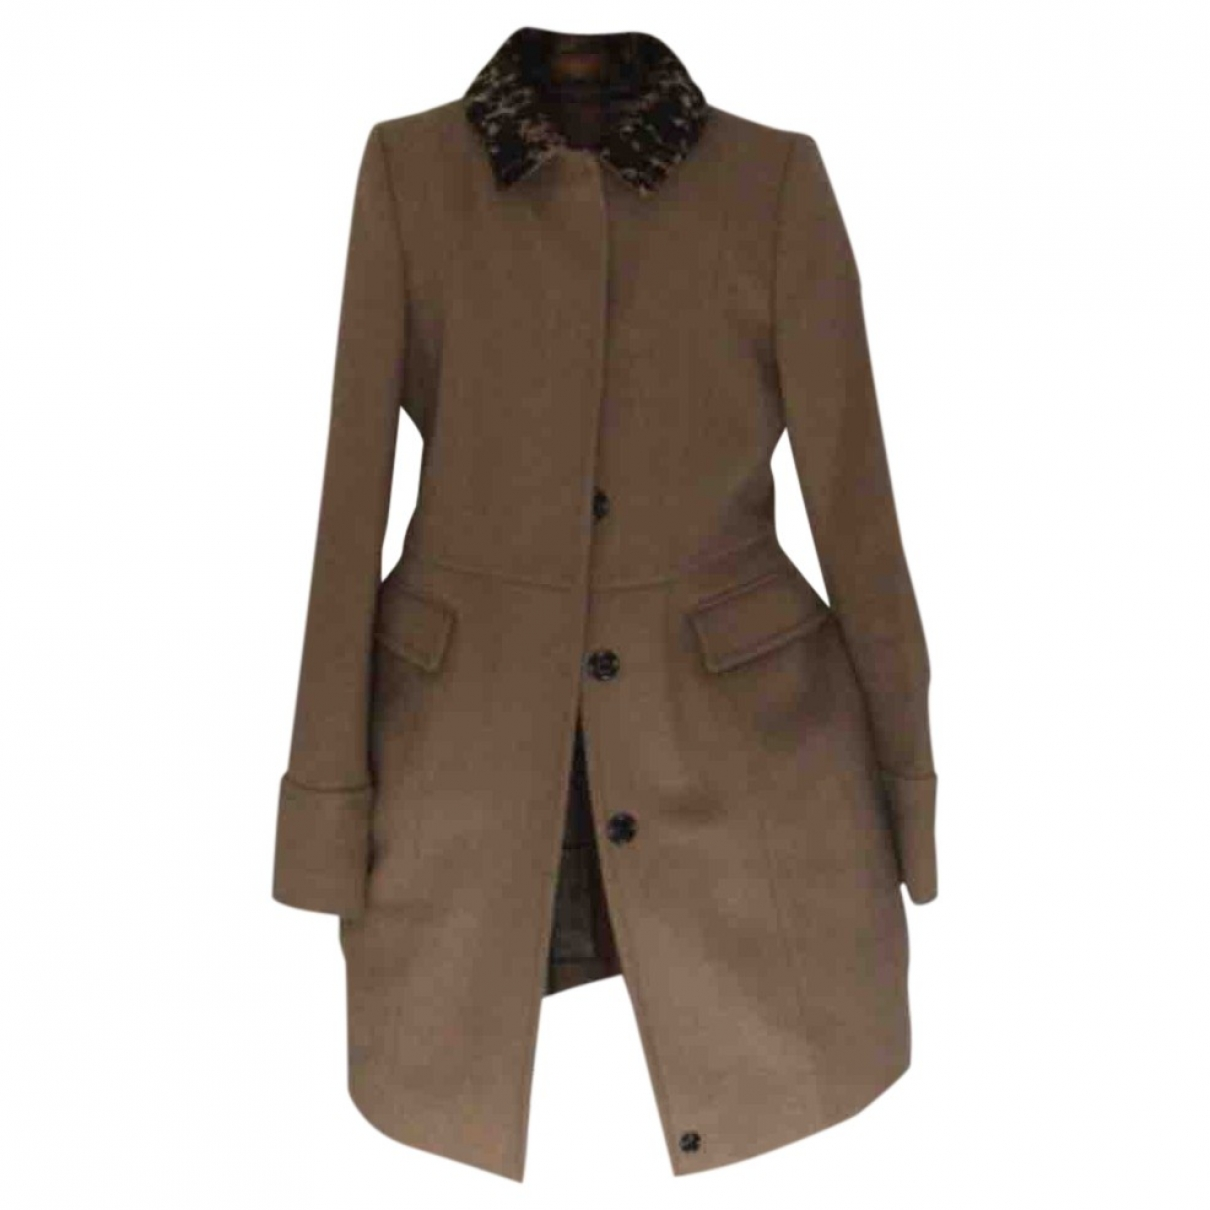 Burberry \N Beige Cashmere jacket & coat for Kids 14 years - S FR